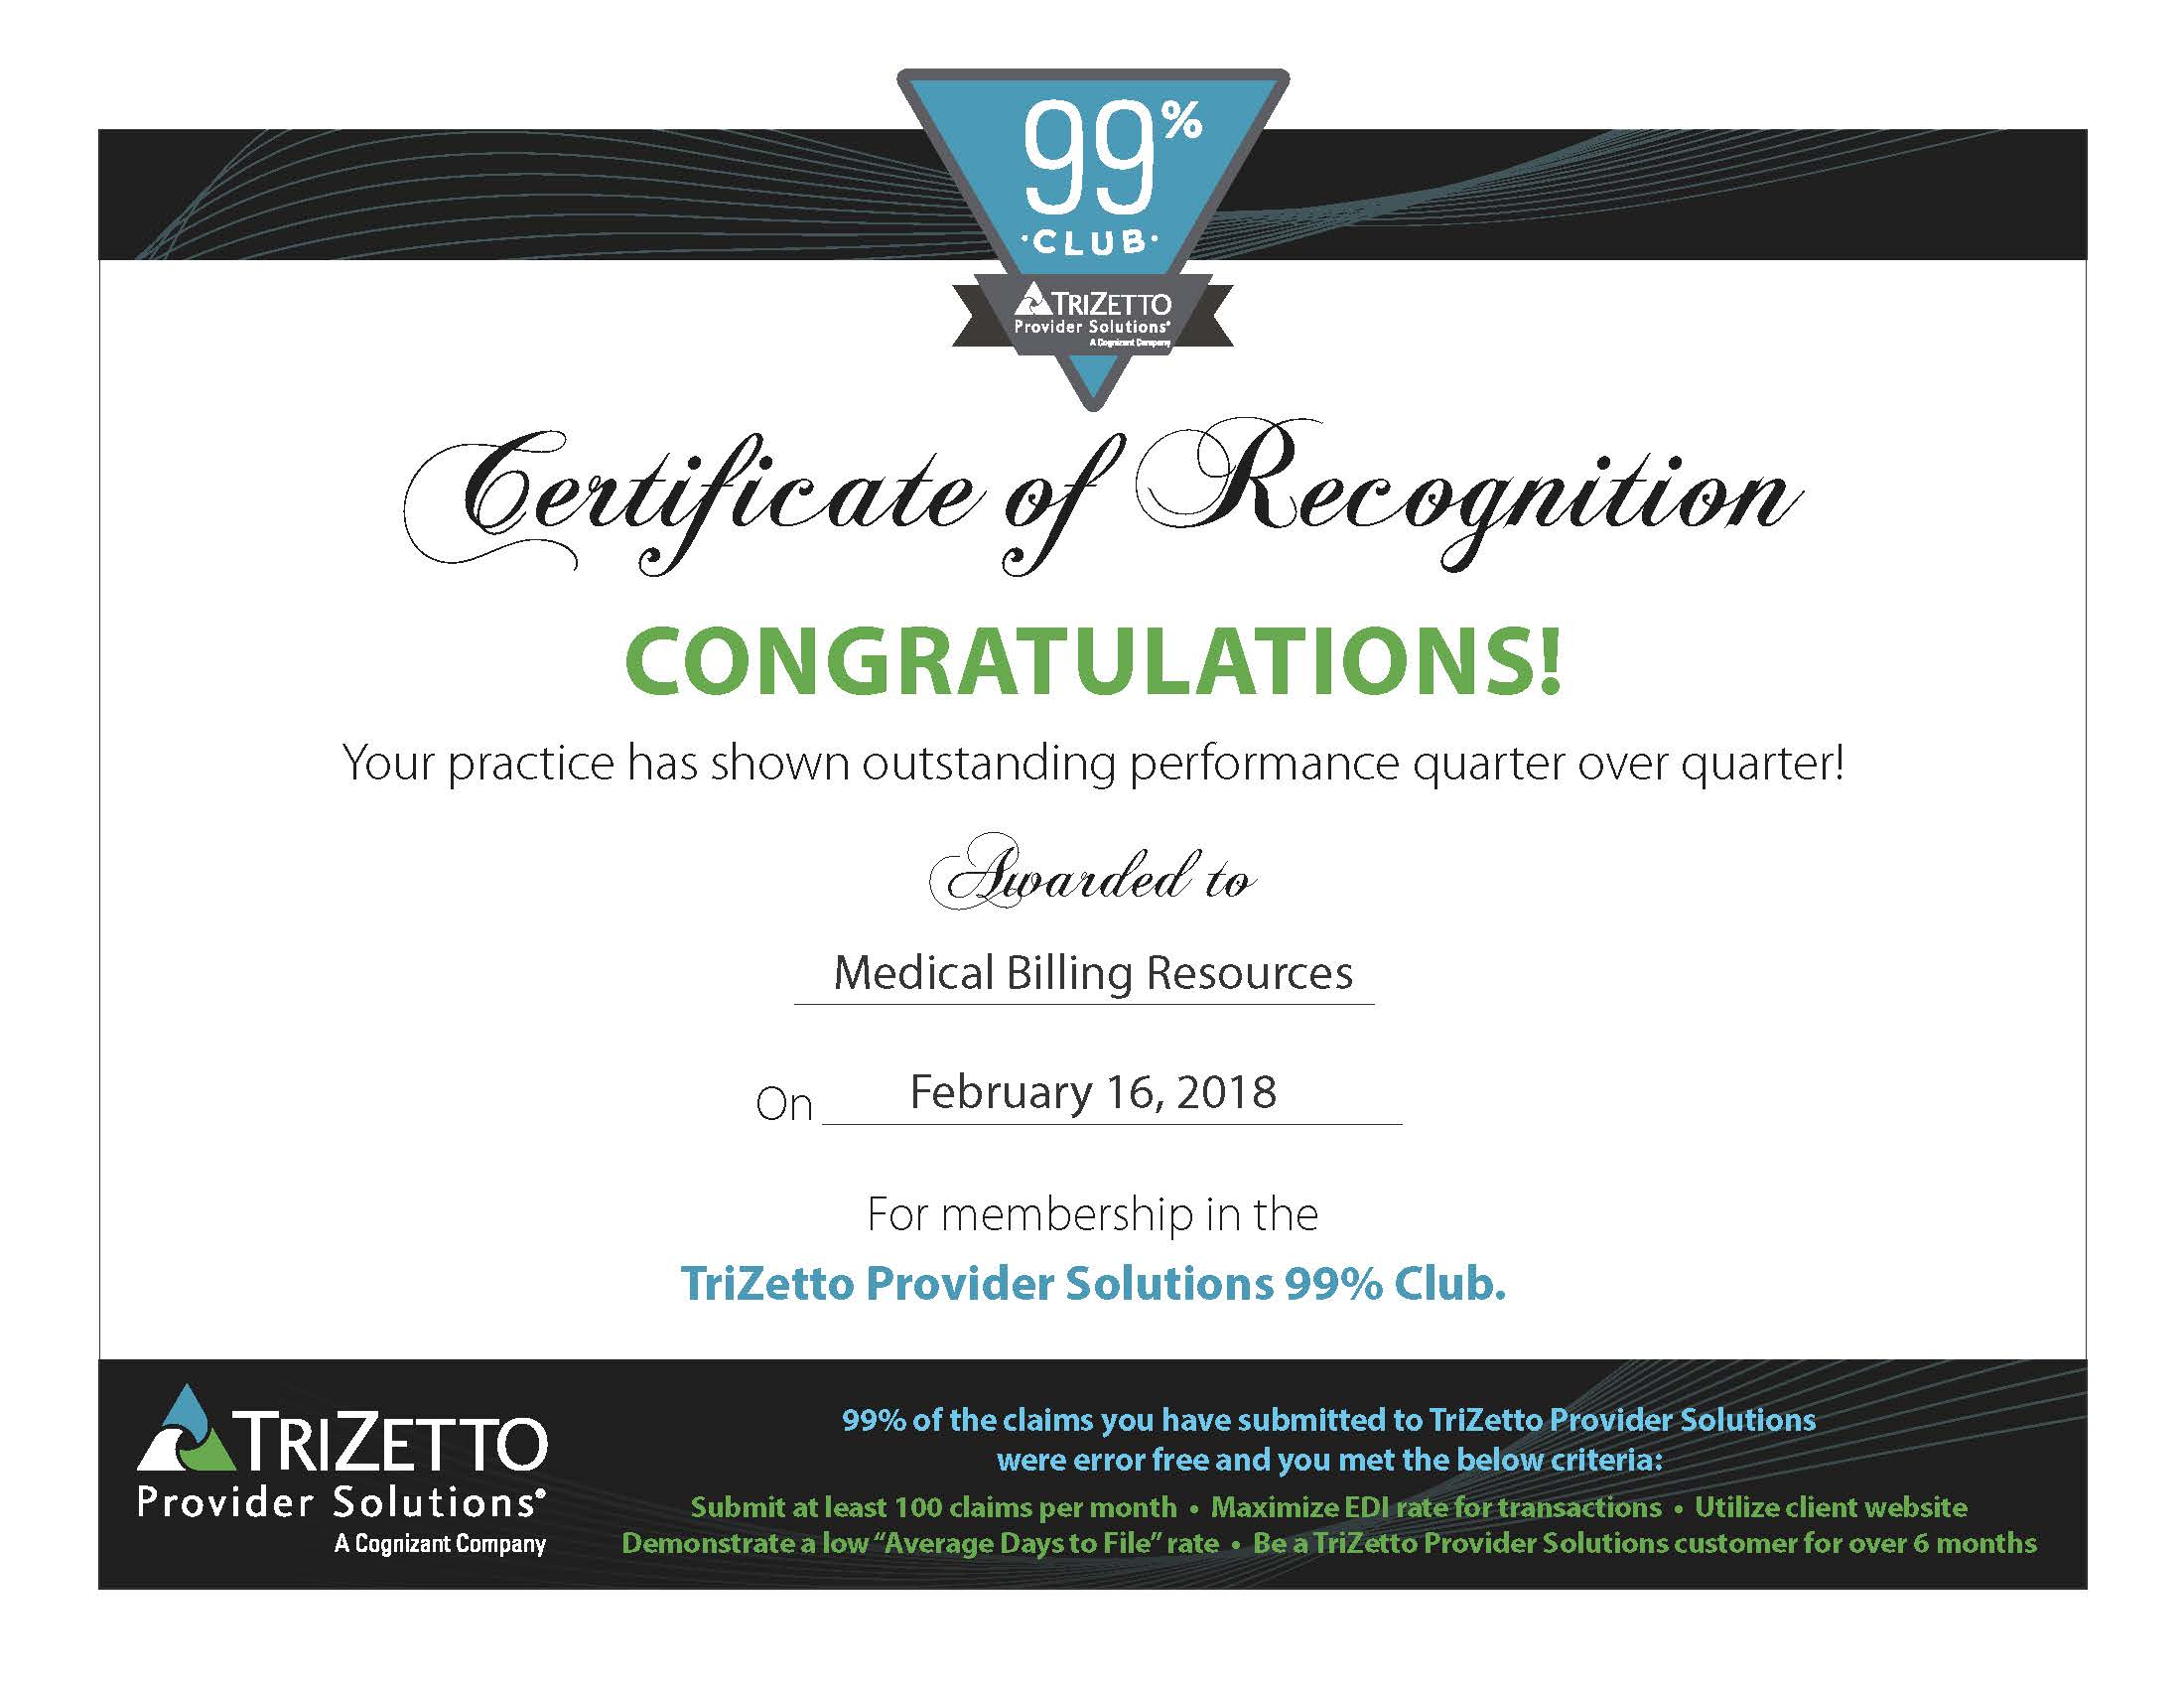 TriZetto Provider Solutions 99% Club